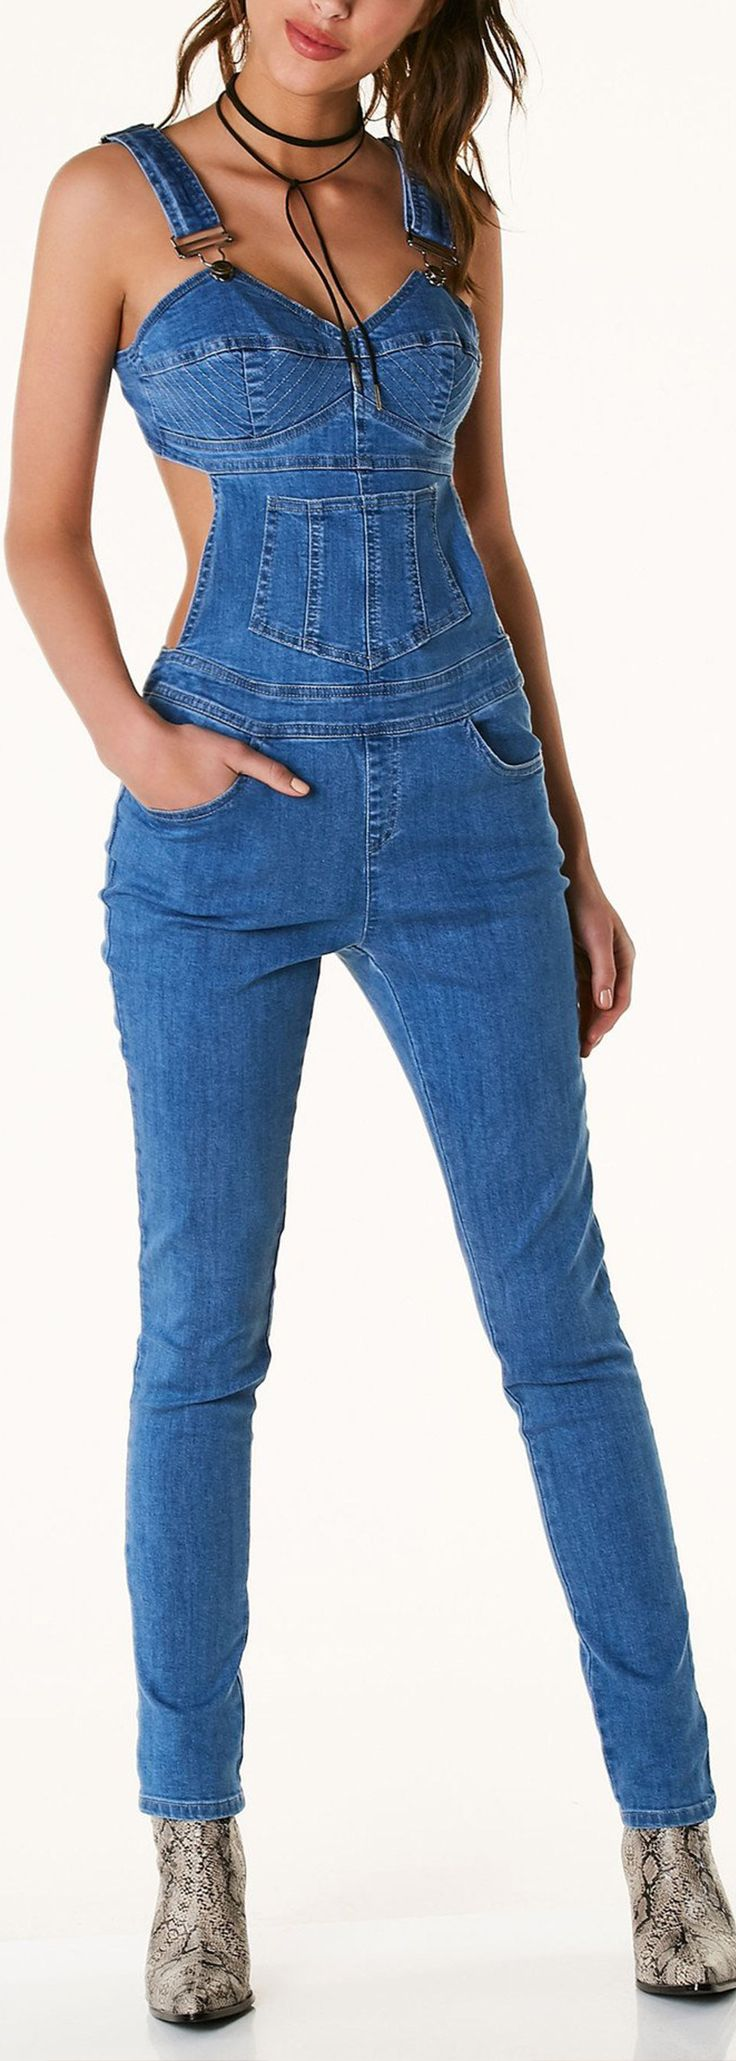 Slim fit denim overalls with V-neckline and adjustable shoulder straps. Five pockets with bustier style design in front and cut out in back. Zippers for closure and silver hardware detailing. - Cotton